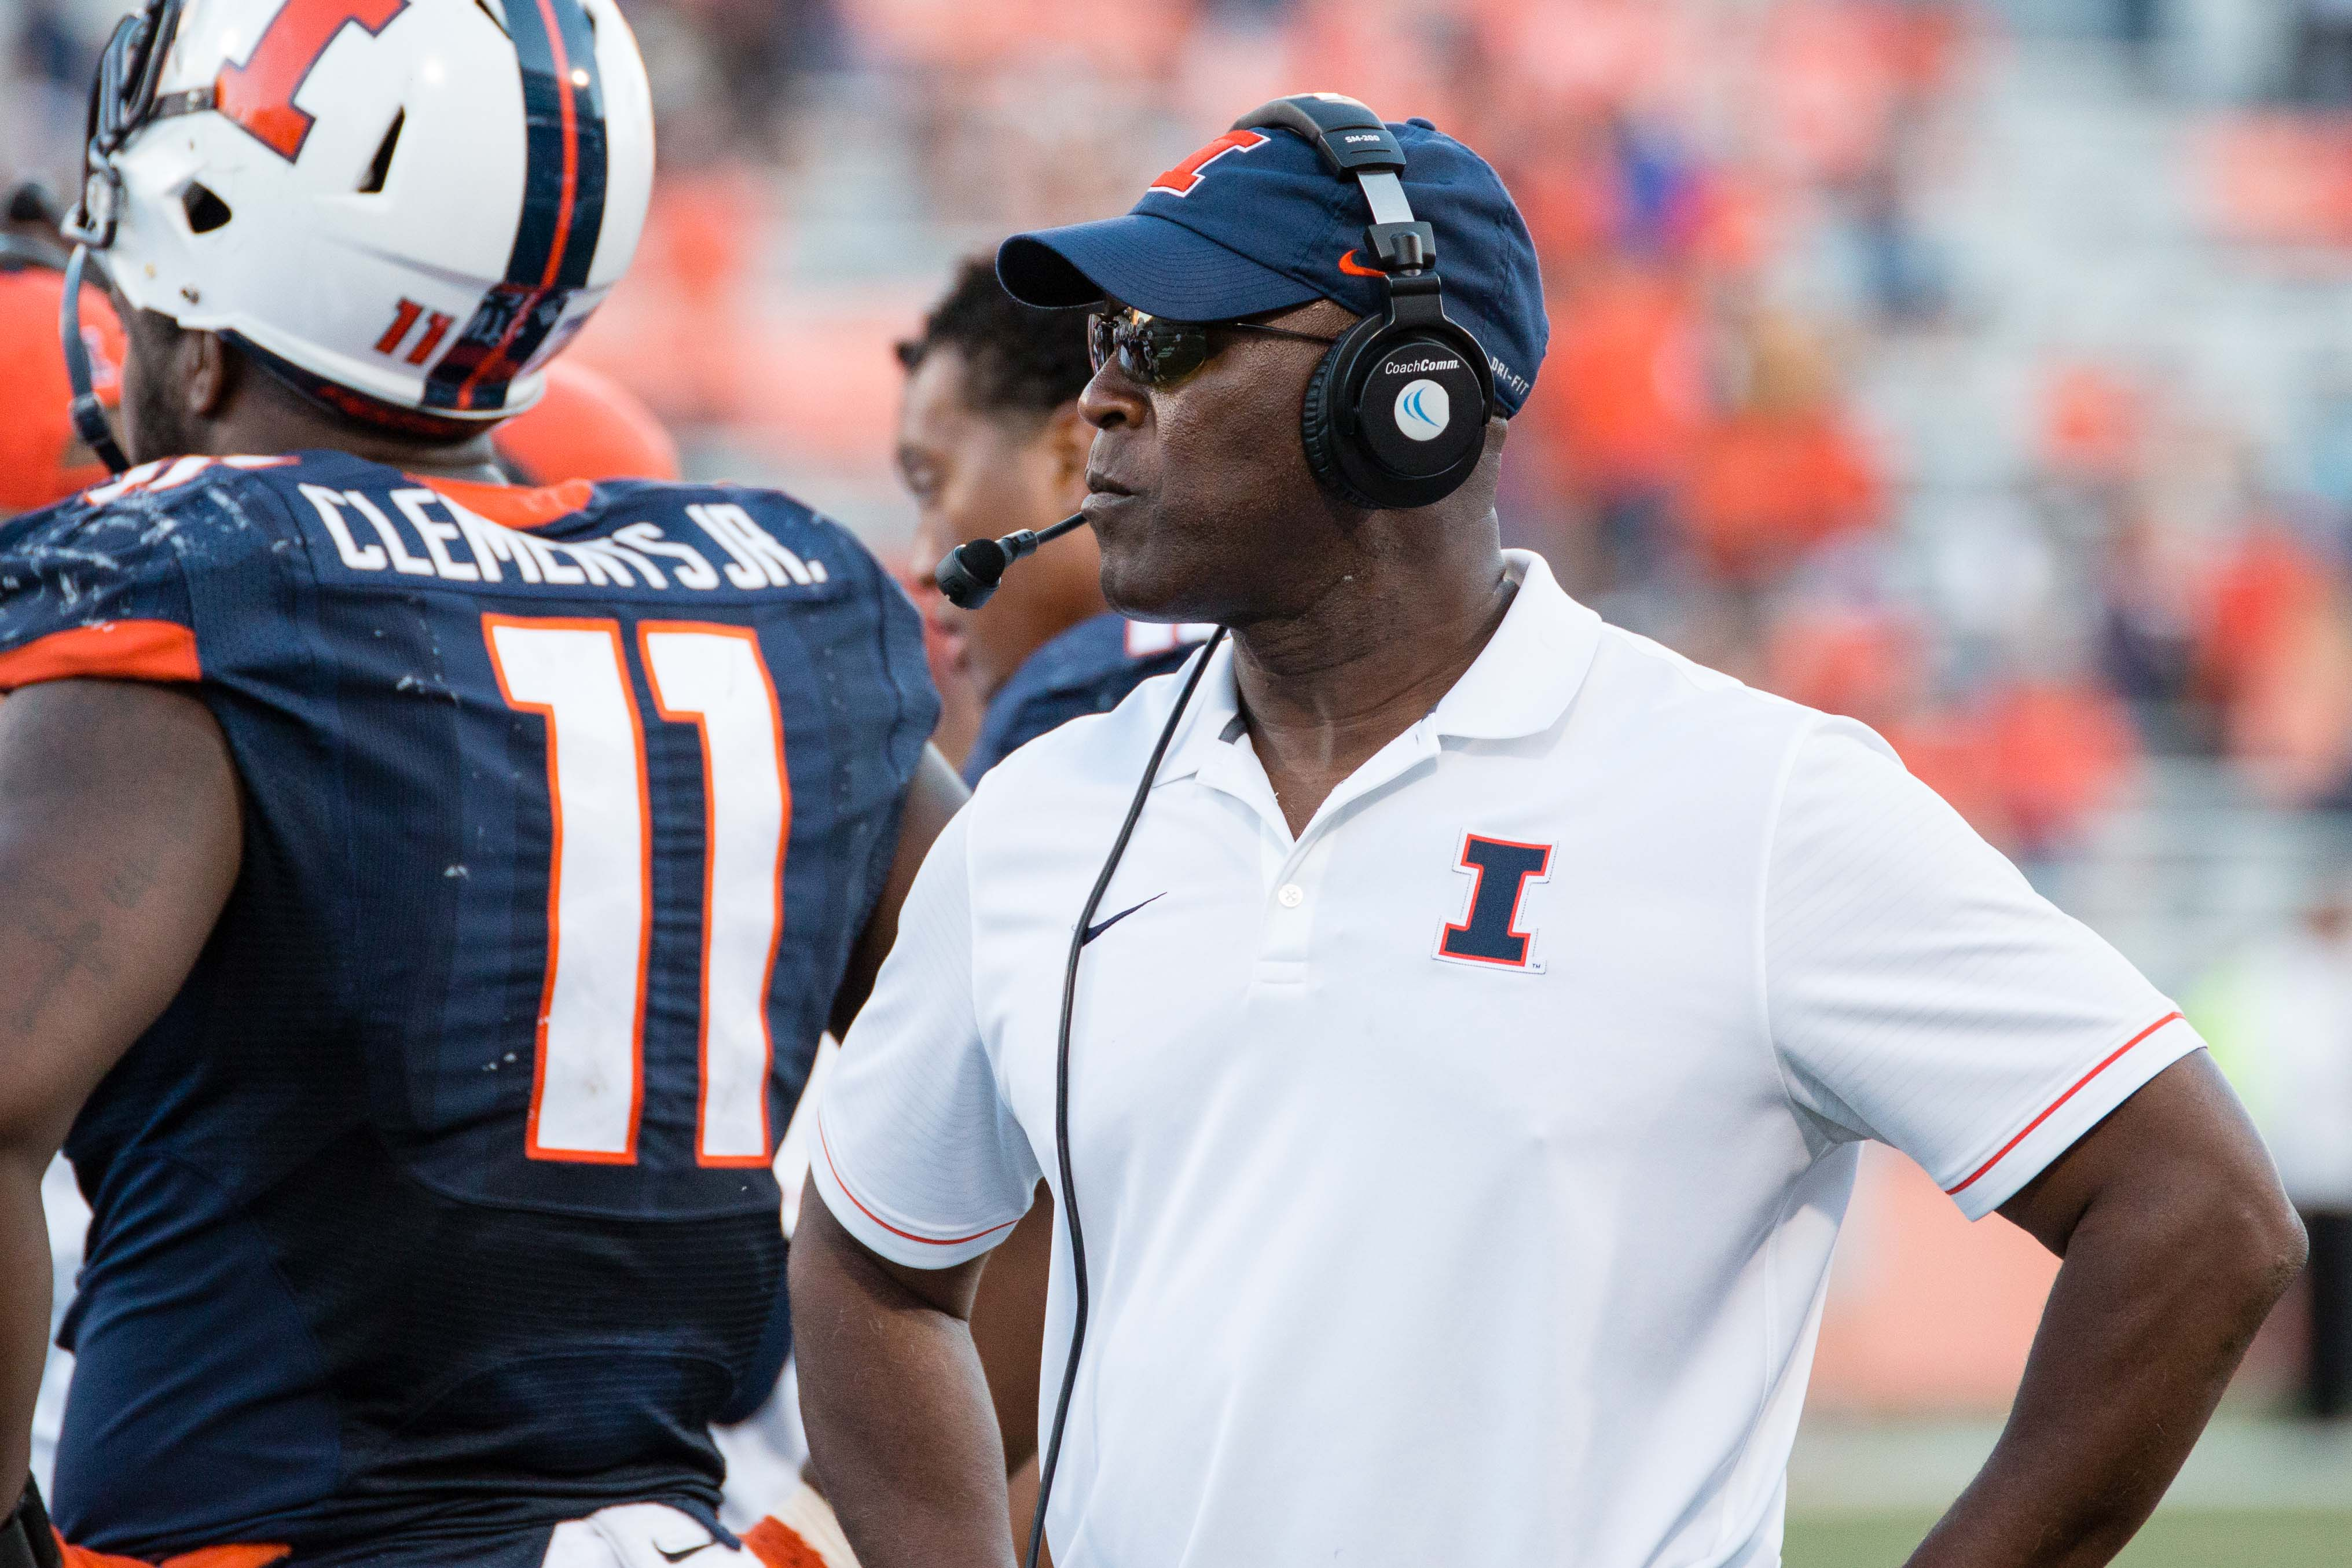 Illinois head coach Lovie Smith walks down the sideline during a timeout in the the game against Western Michigan at Memorial Stadium on Saturday, September 17.  Smith made his first signing of the class of 2018, Peoria Quarterback and three-star recruit Coran Taylor, Monday.